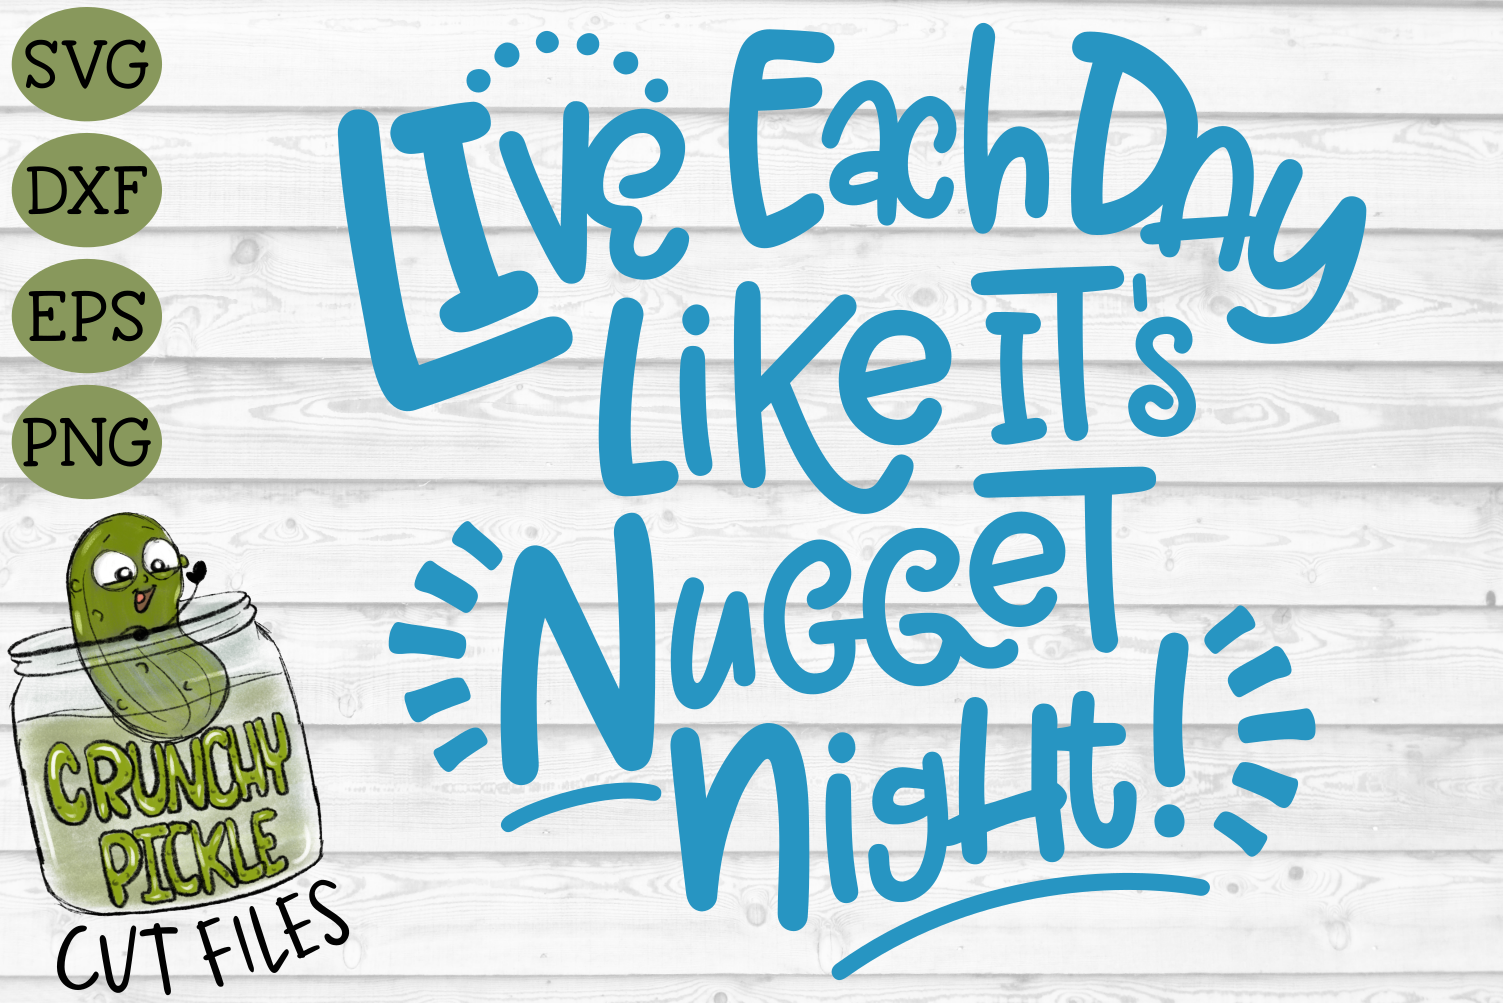 Live Each Day Like It's Nugget Night SVG Cut File example image 2